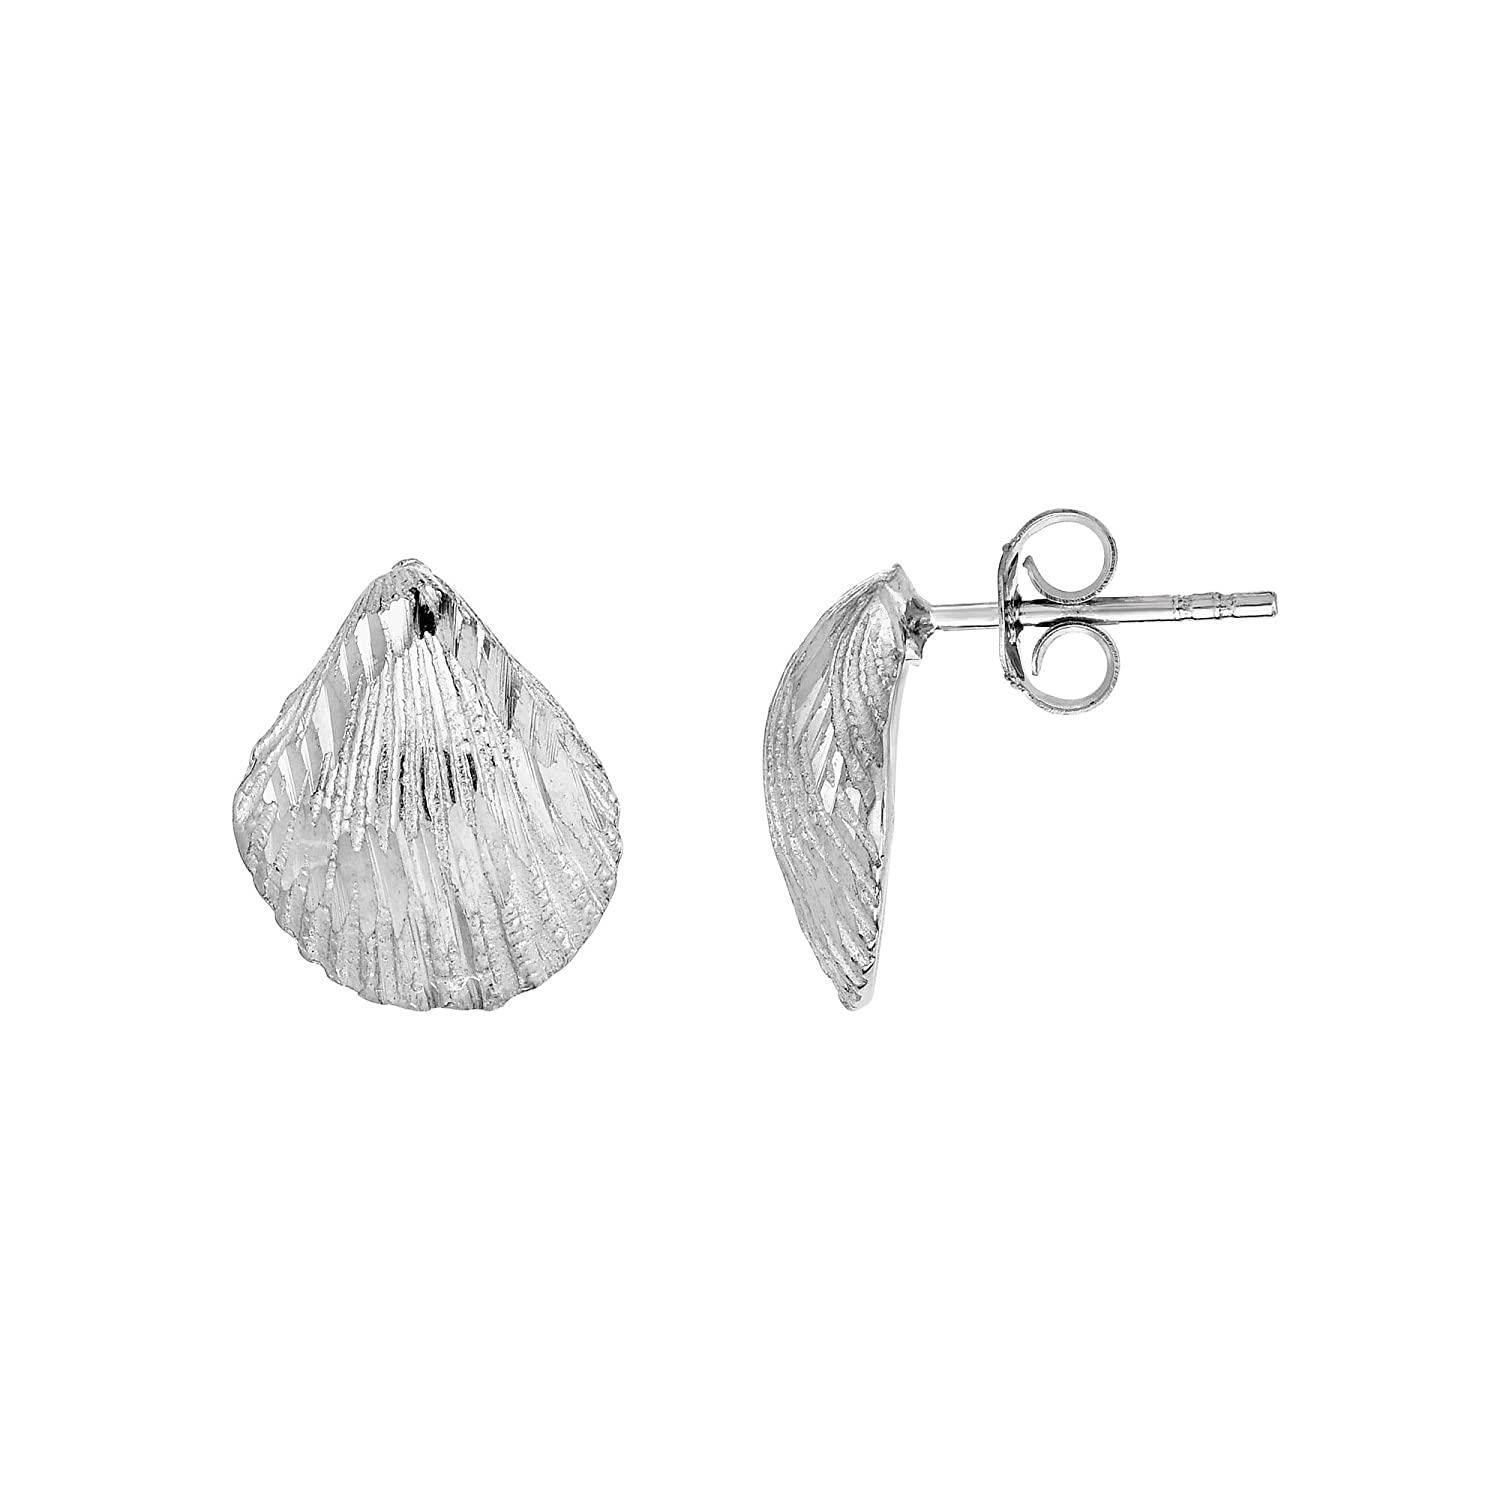 .925 Sterling Silver 11mm Textured Sea Shell Shape Earrings Push Back Clasp